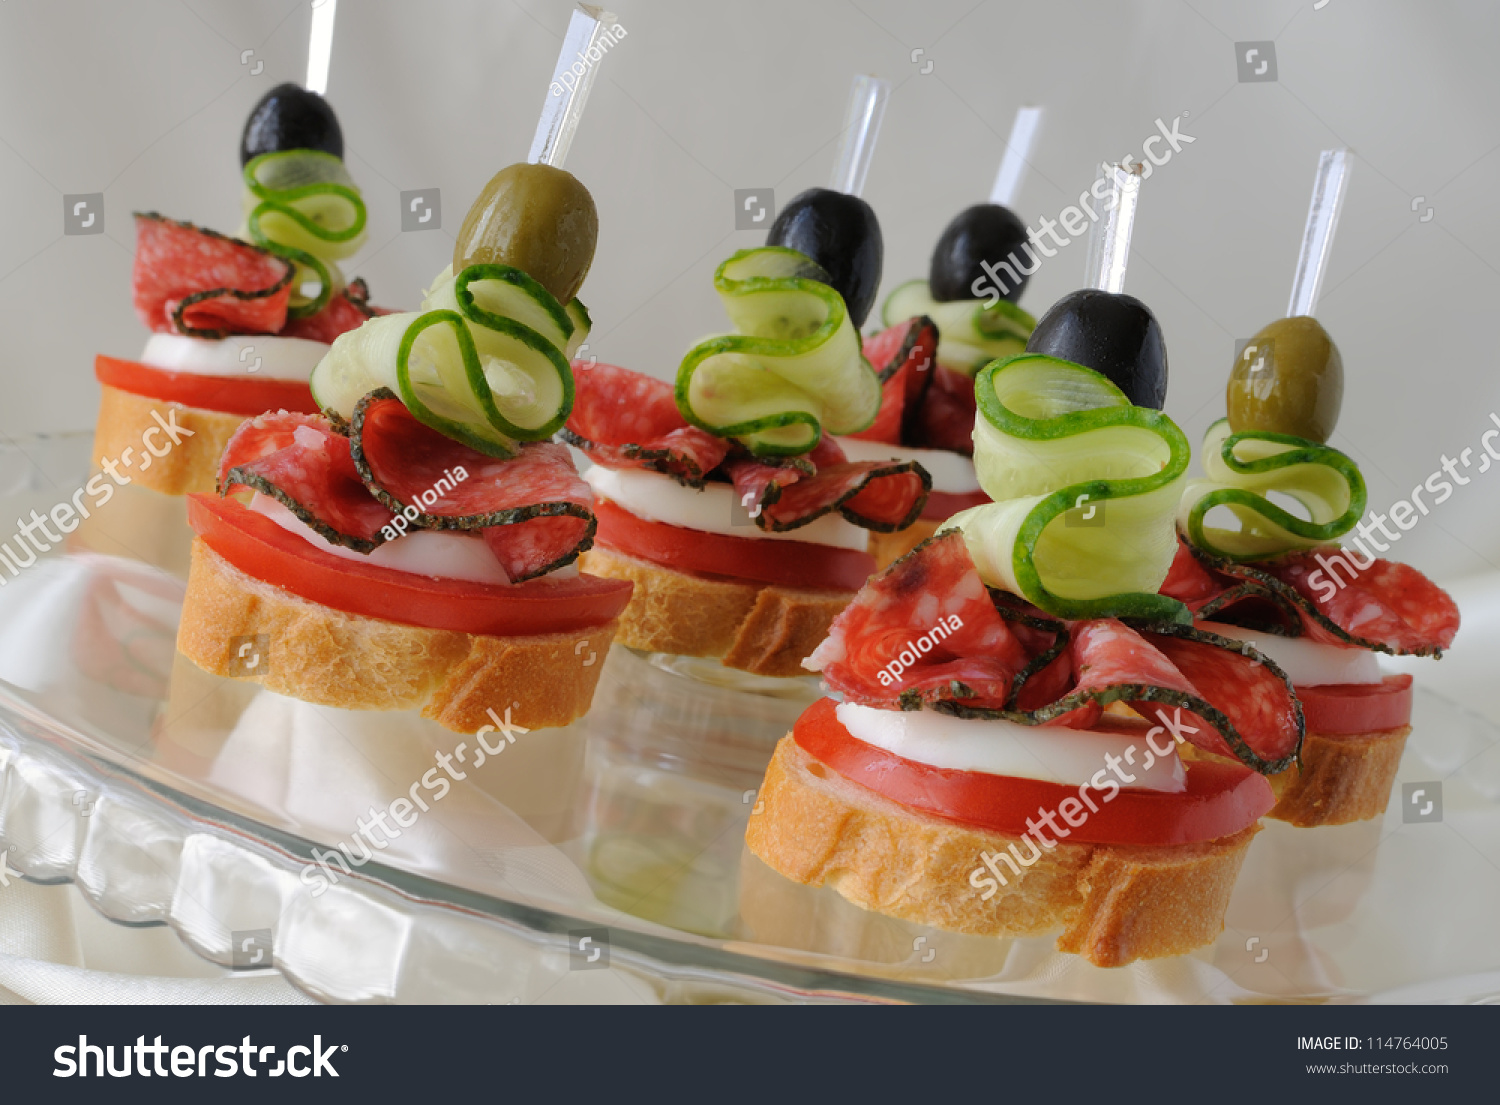 Canape baguette salami on glass base stock photo 114764005 for Canape orientale